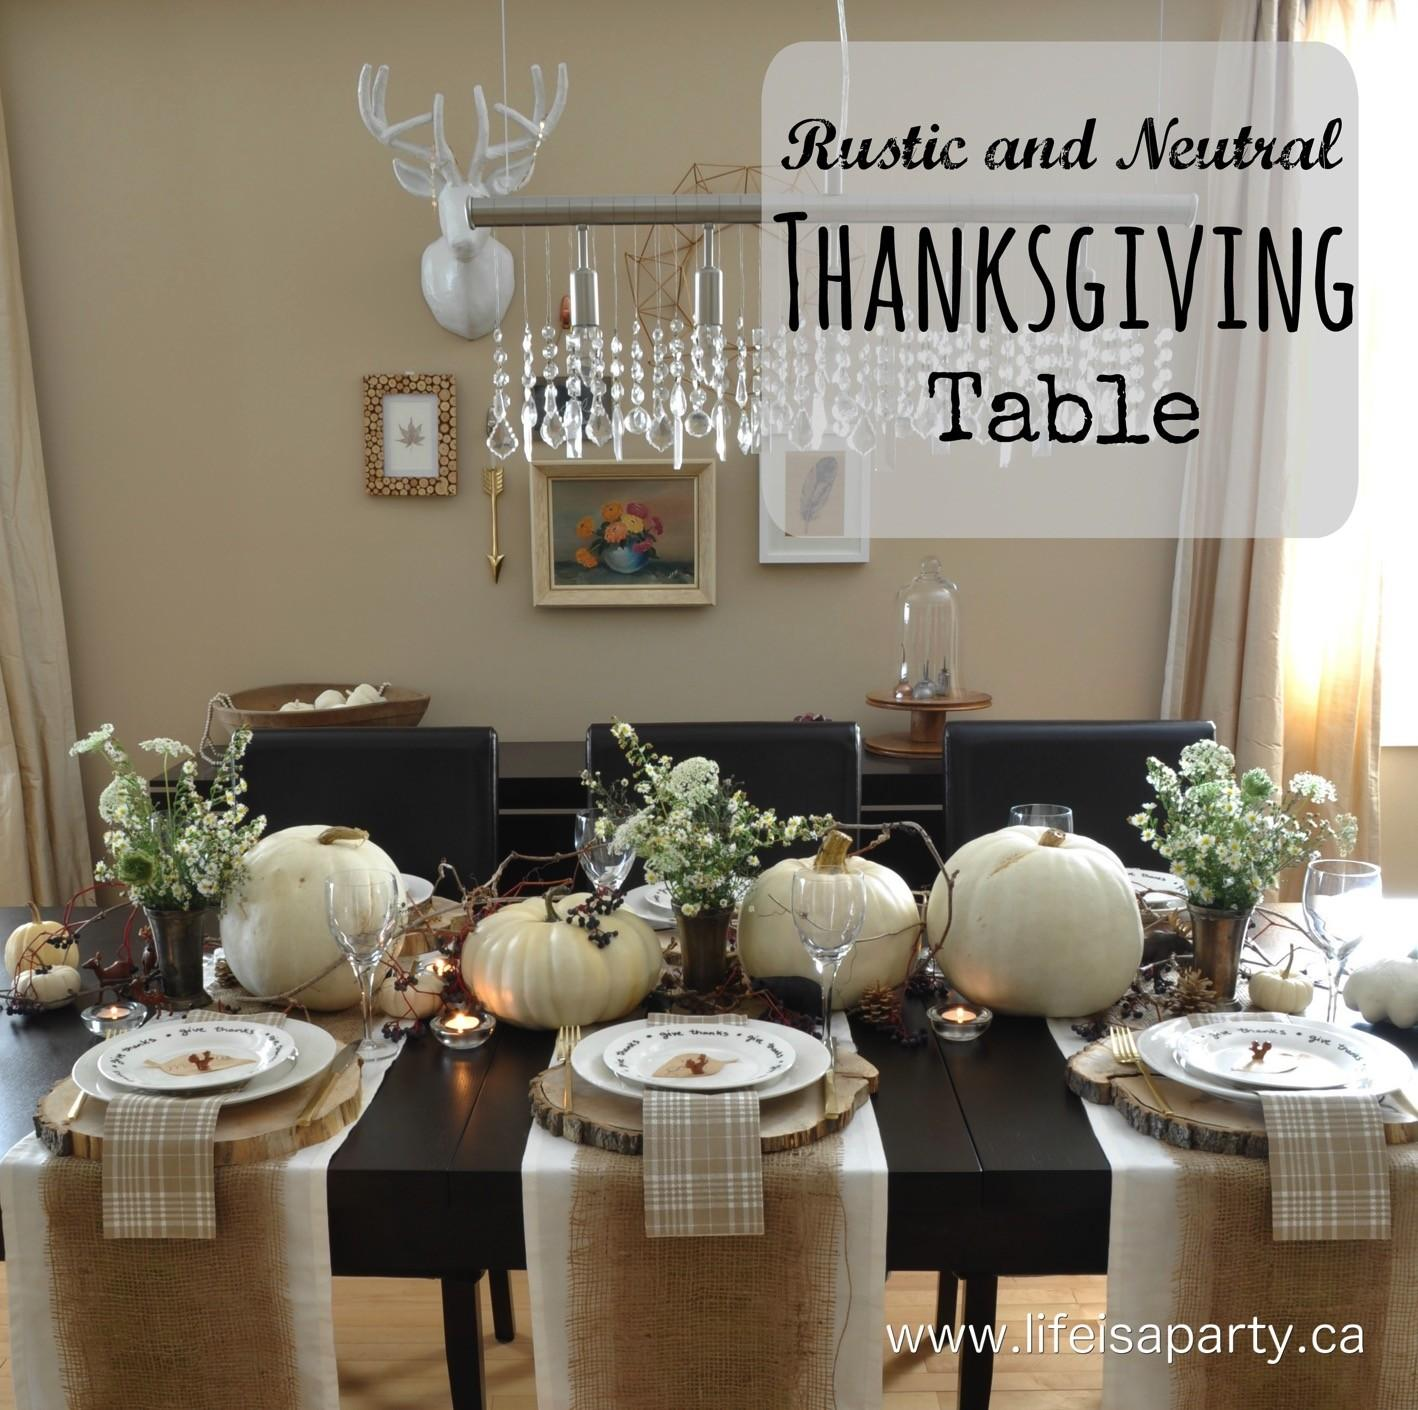 Rustic Neutral Thanksgiving Table Life Party